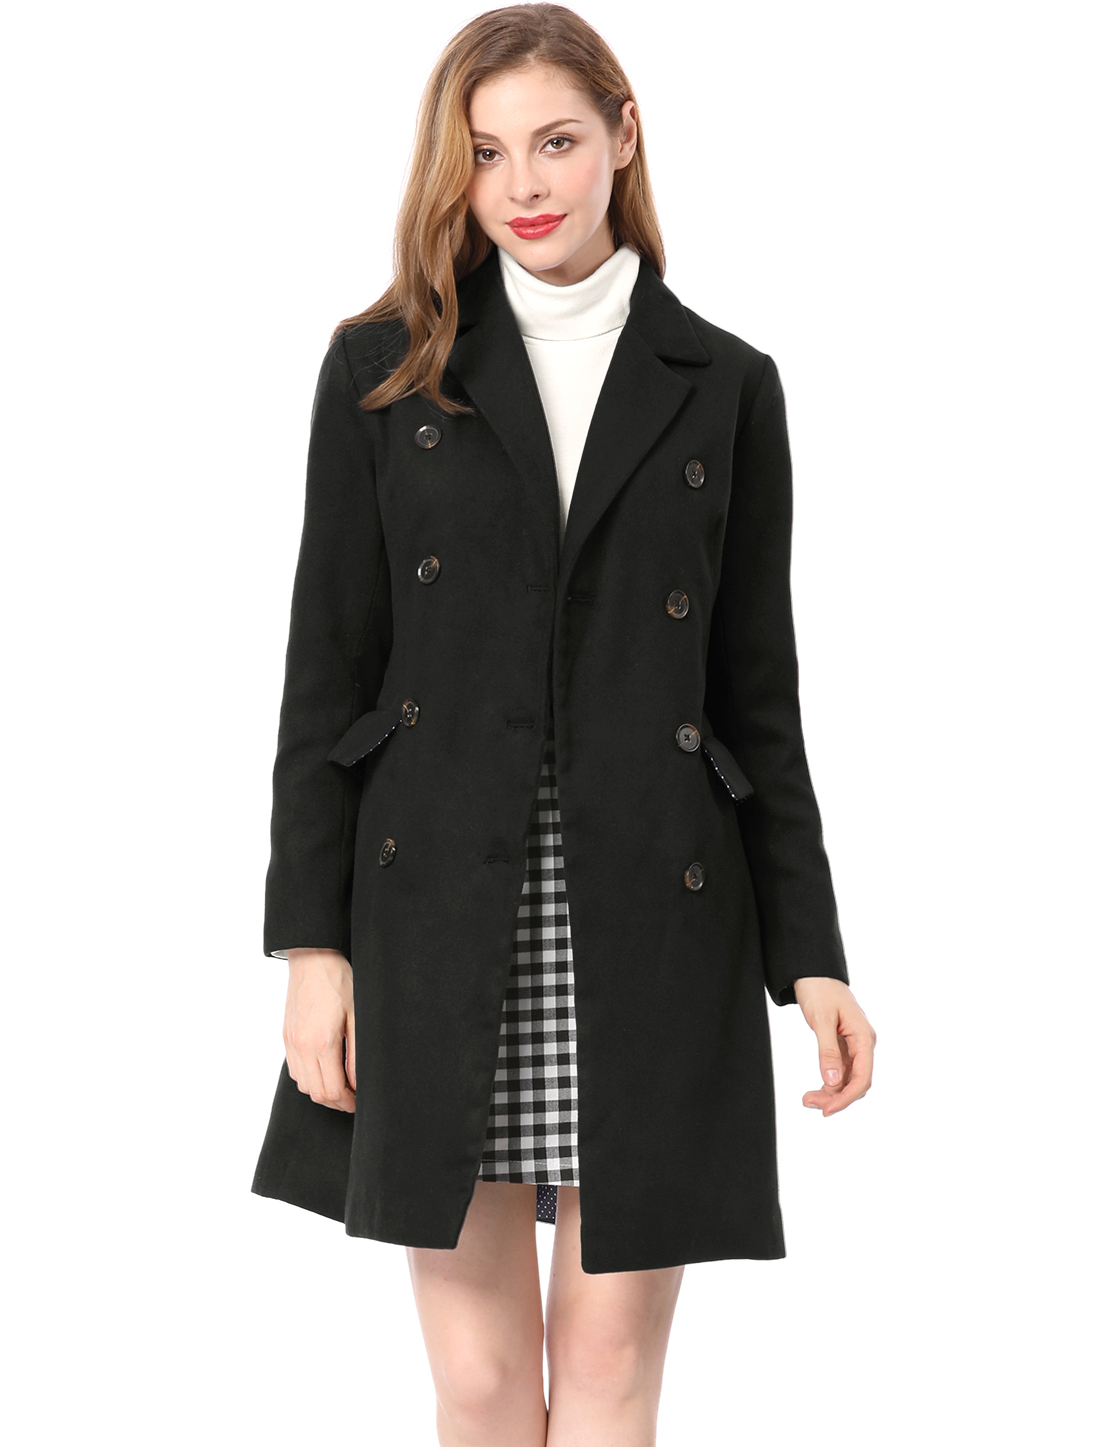 Women Notched Lapel Double Breasted Trench Coat Black XS (US 2)